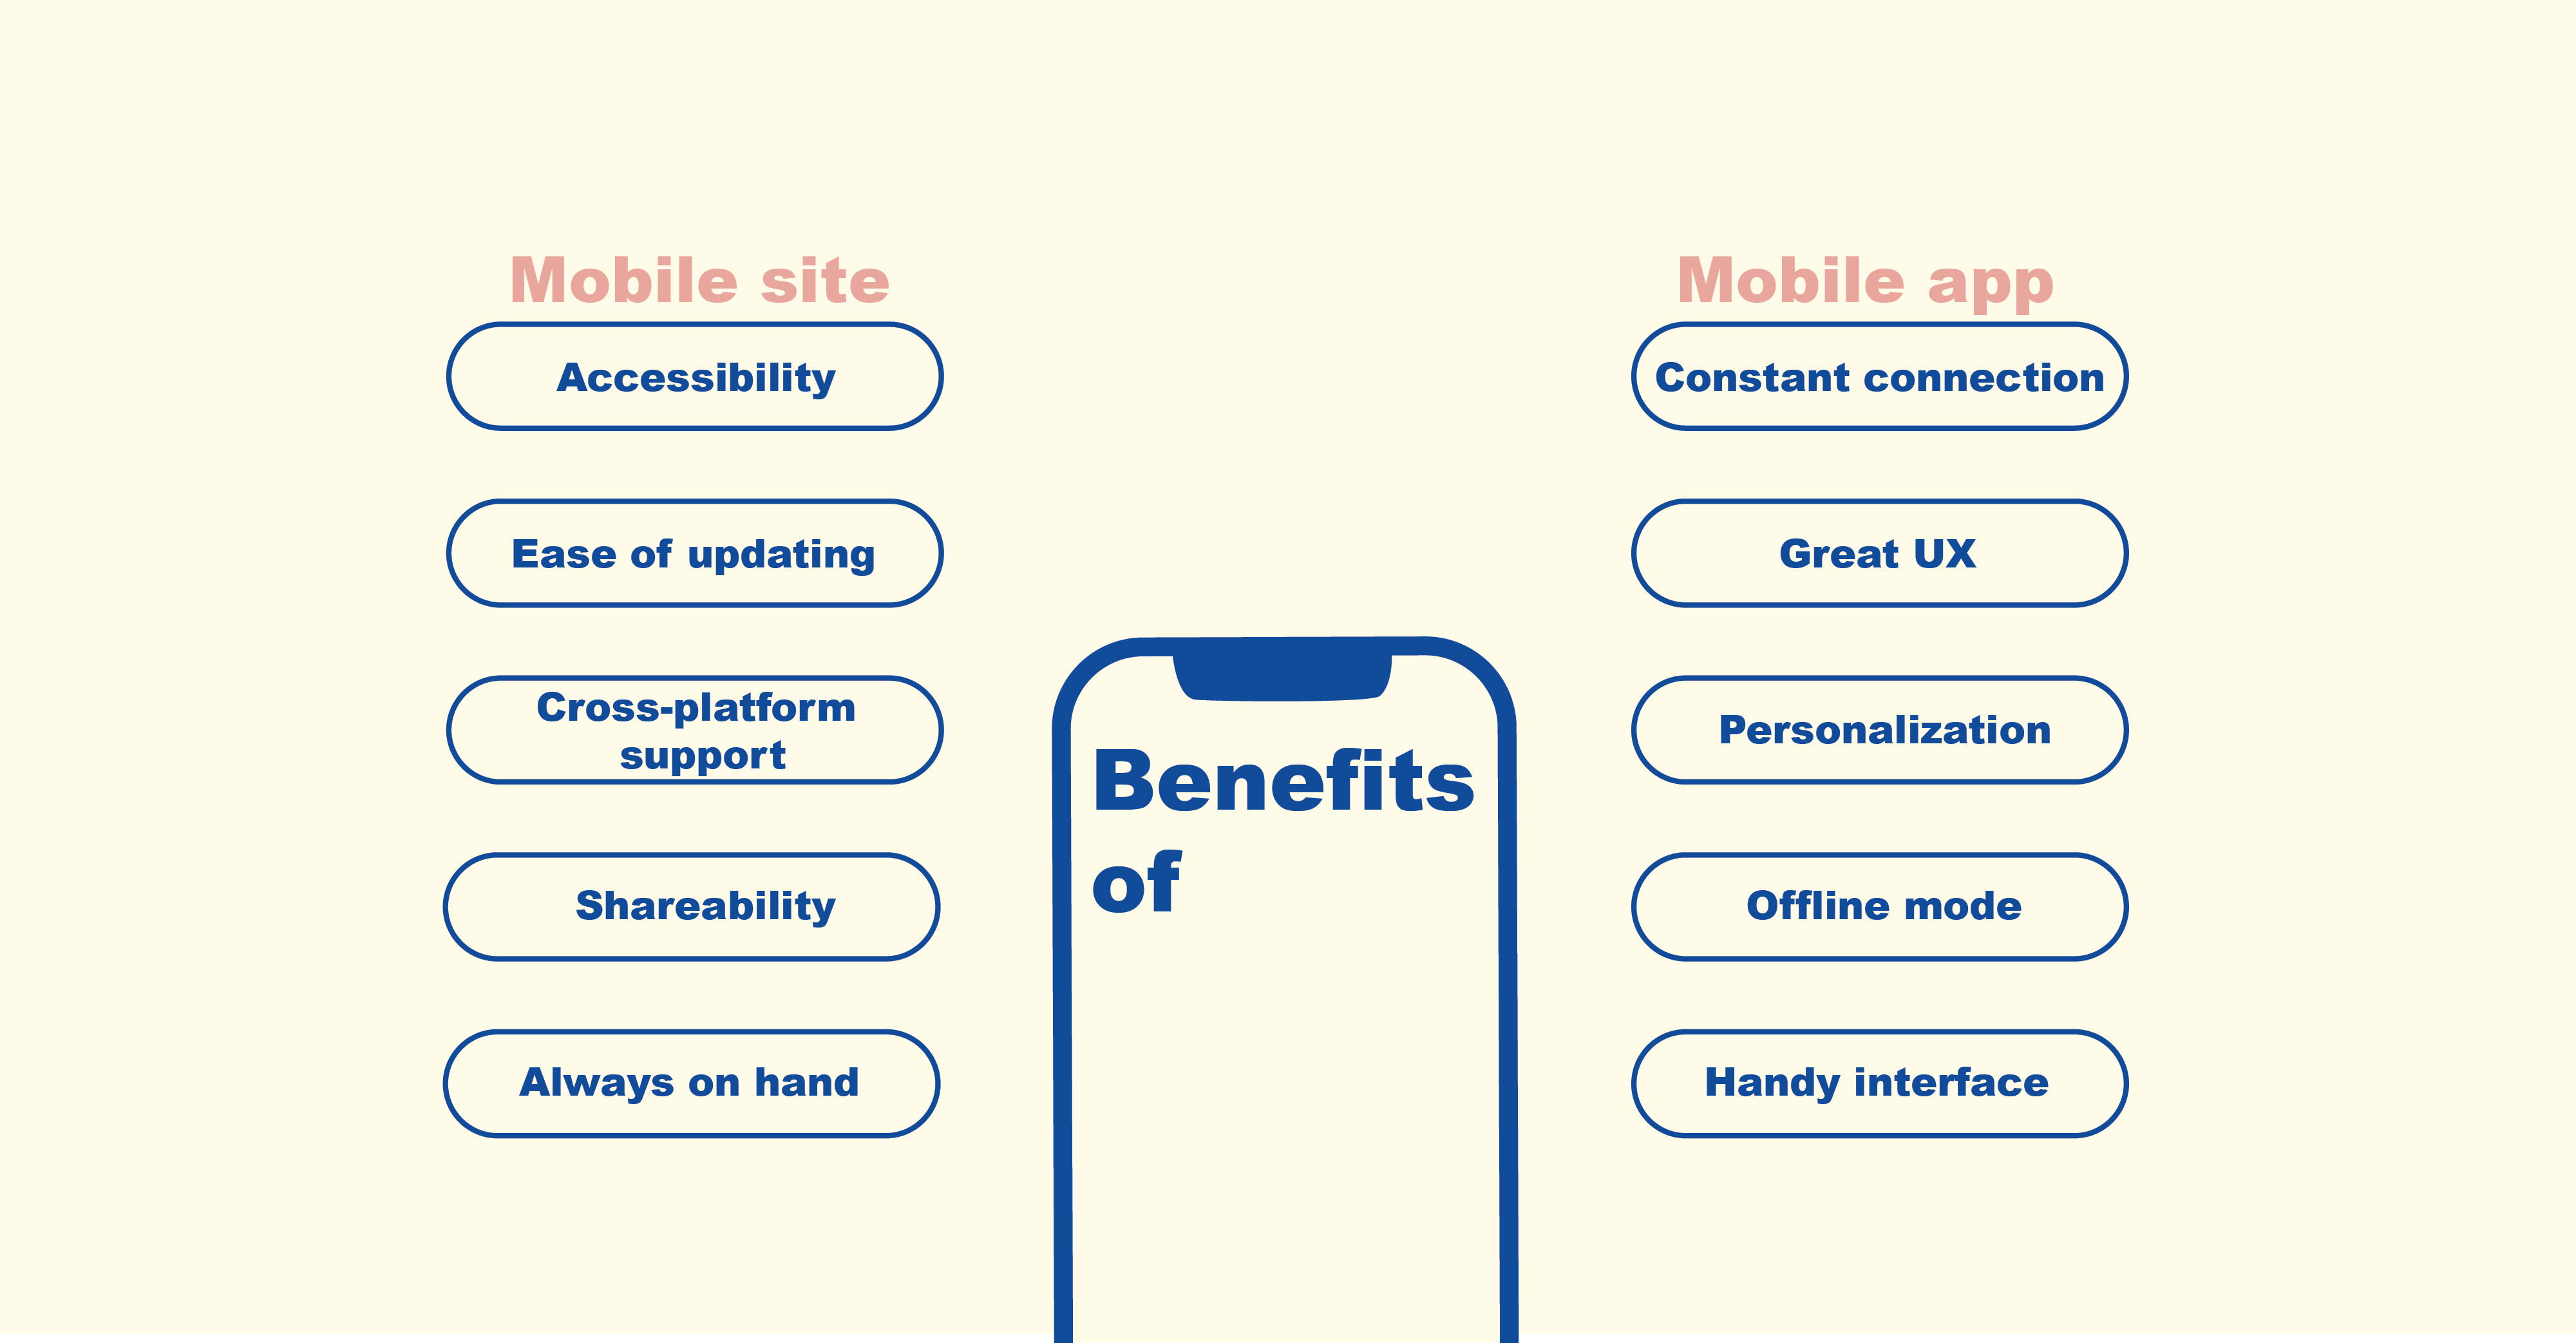 Benefits of mobile site and mobile app